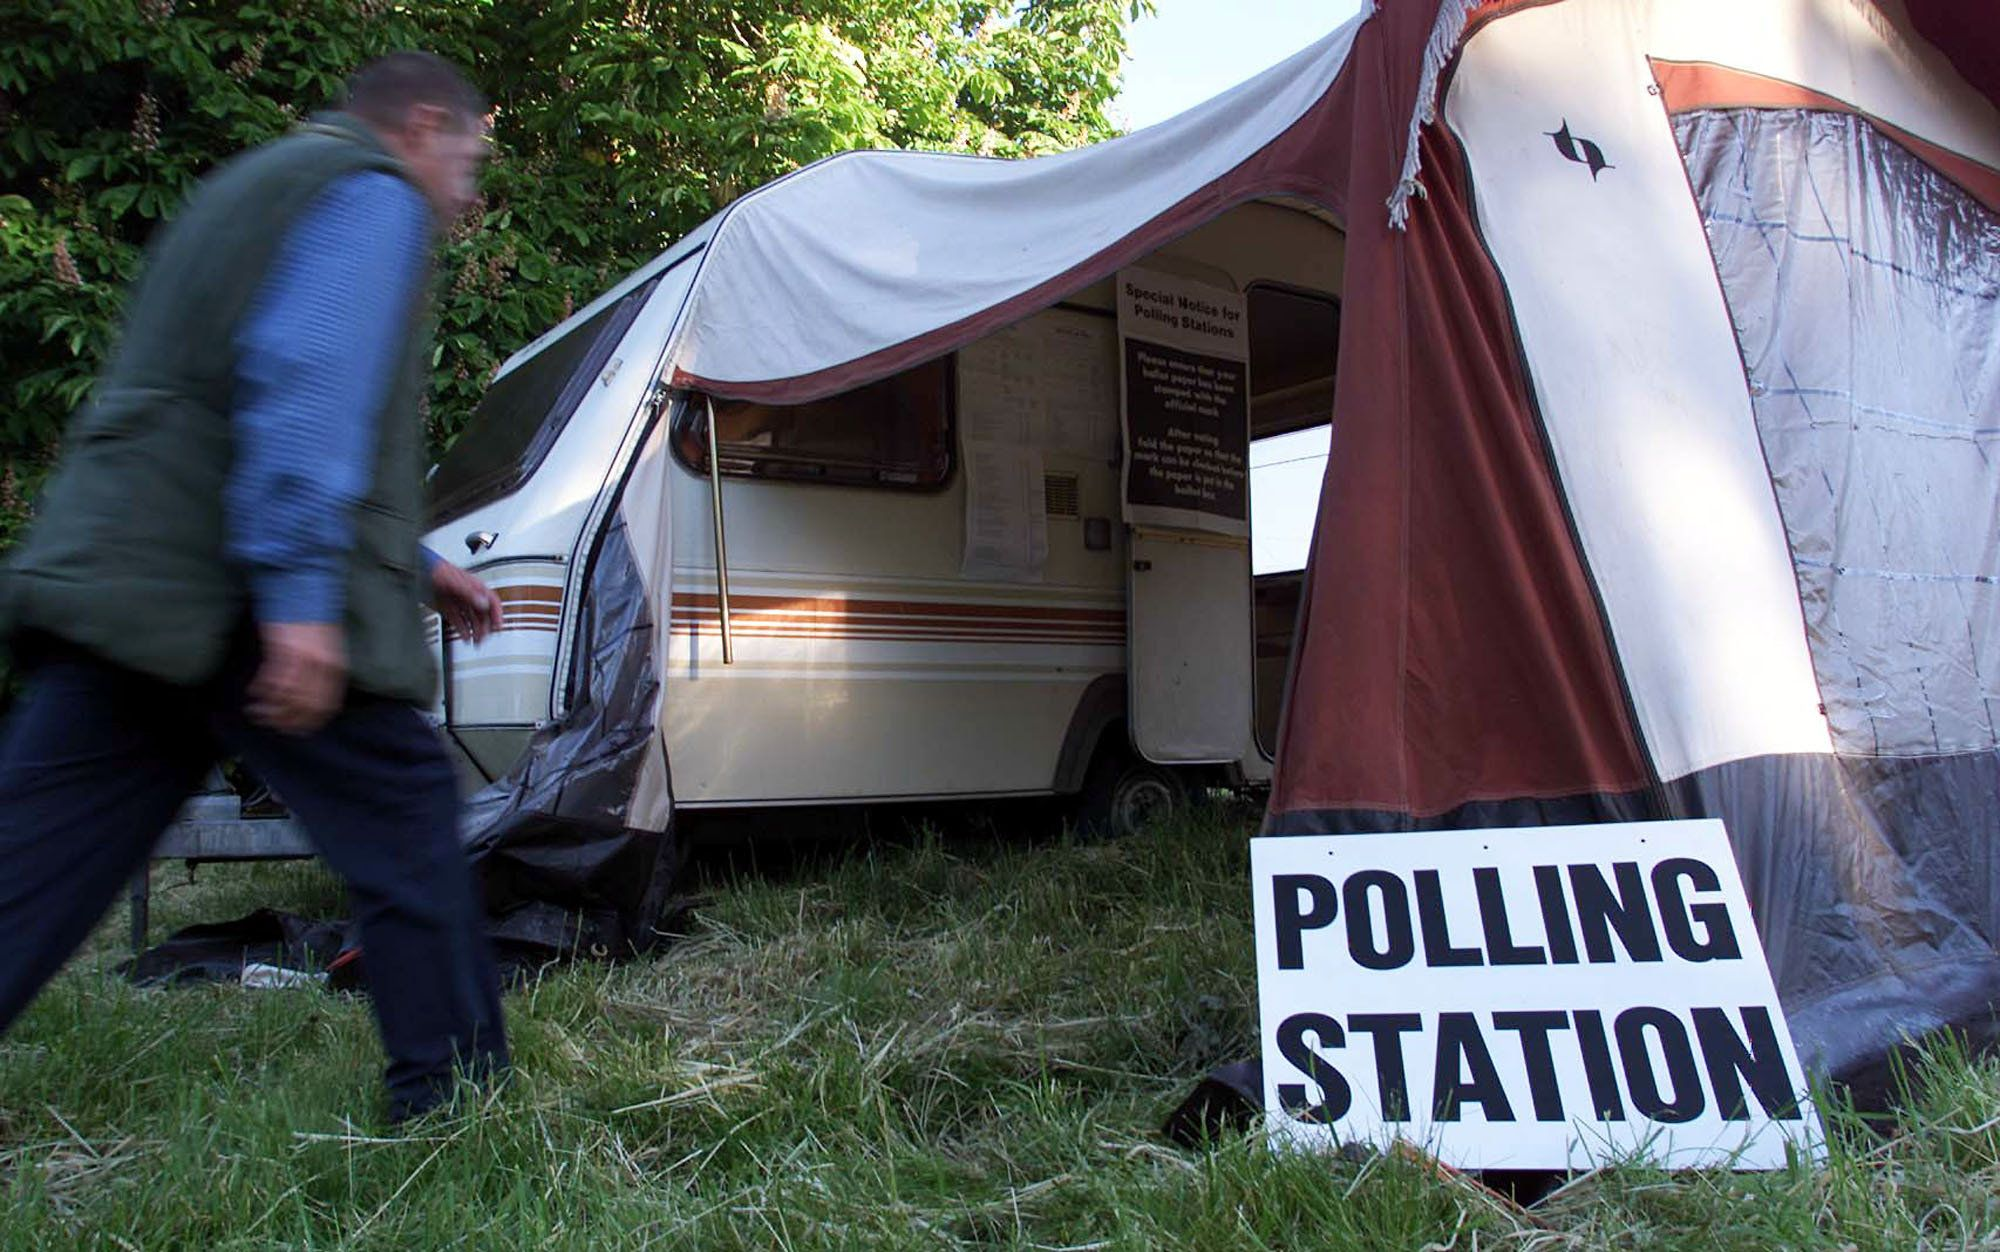 It's easy to find your nearest polling